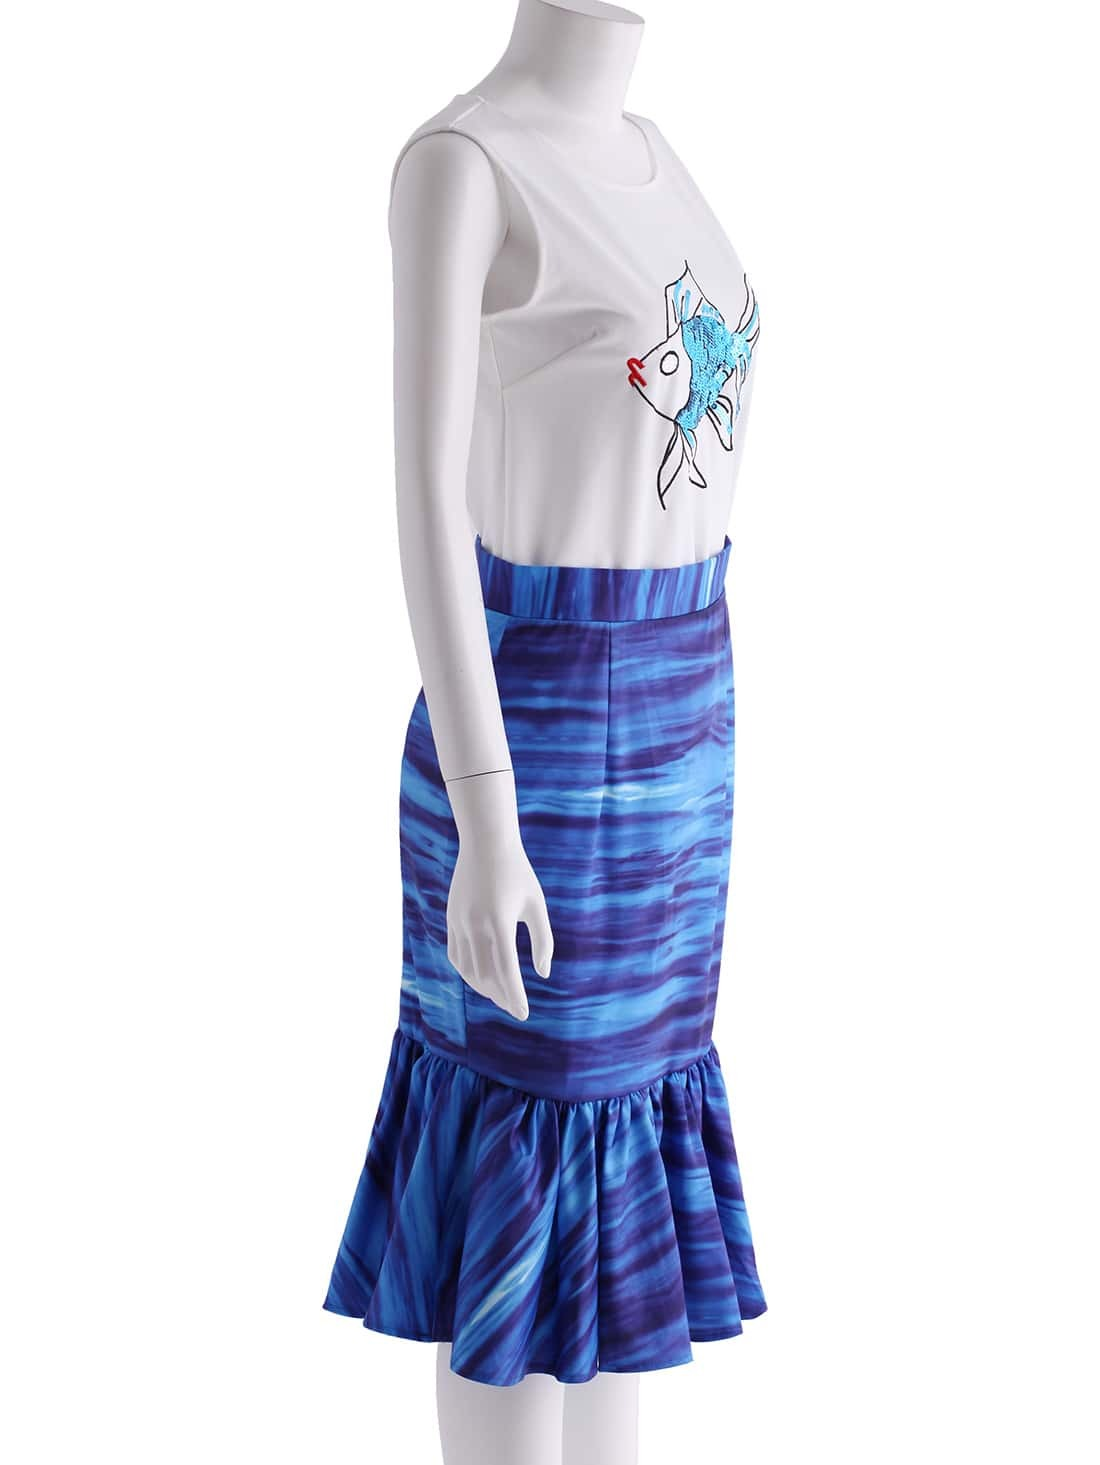 white sleeveless sequined fish top with blue ruffle skirt